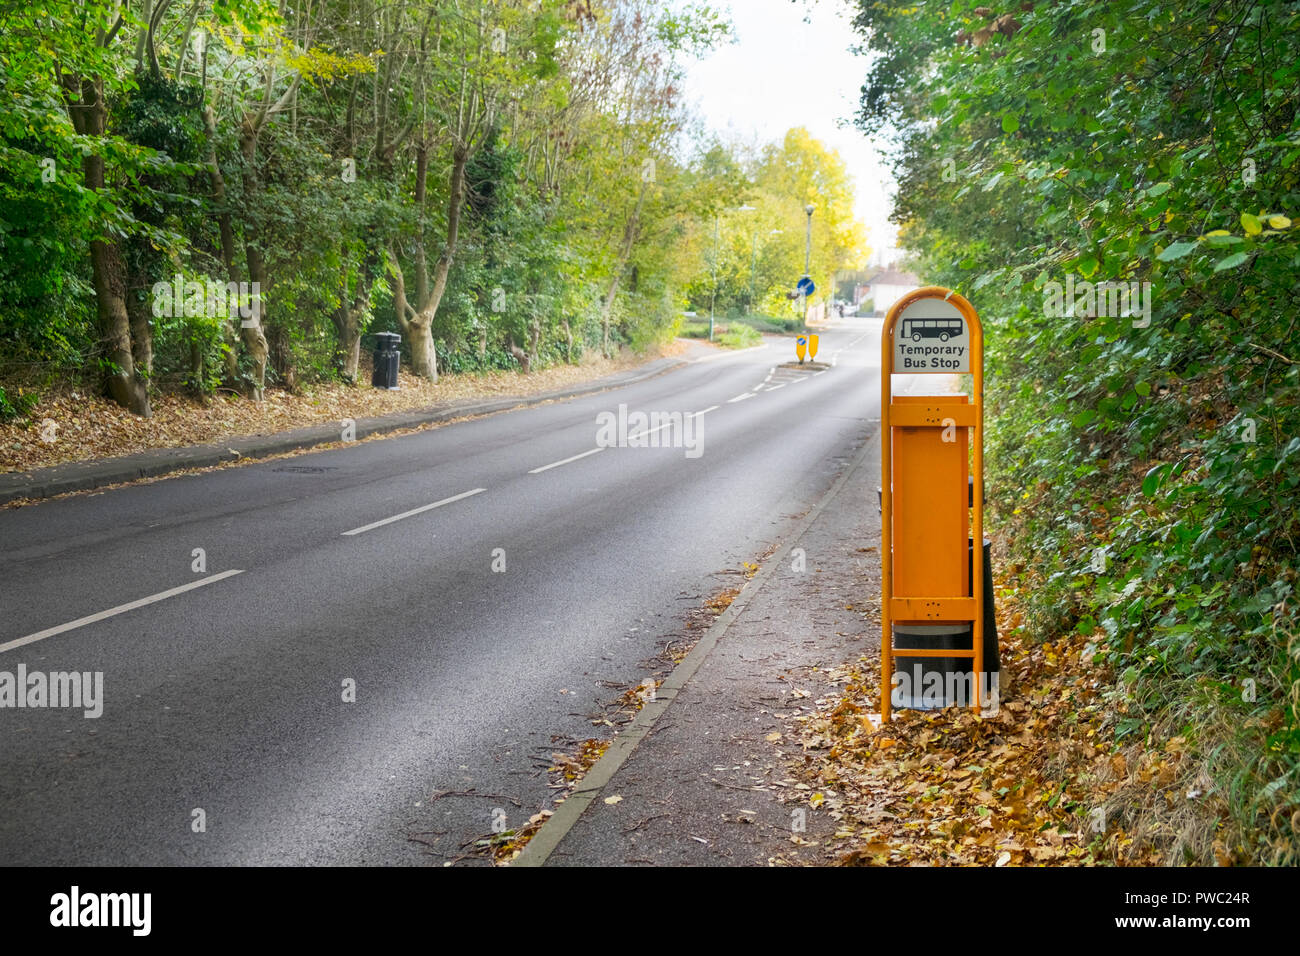 Temporary bus stop sign in a rural village tree lined road with no traffic, hamstreet, kent, uk - Stock Image